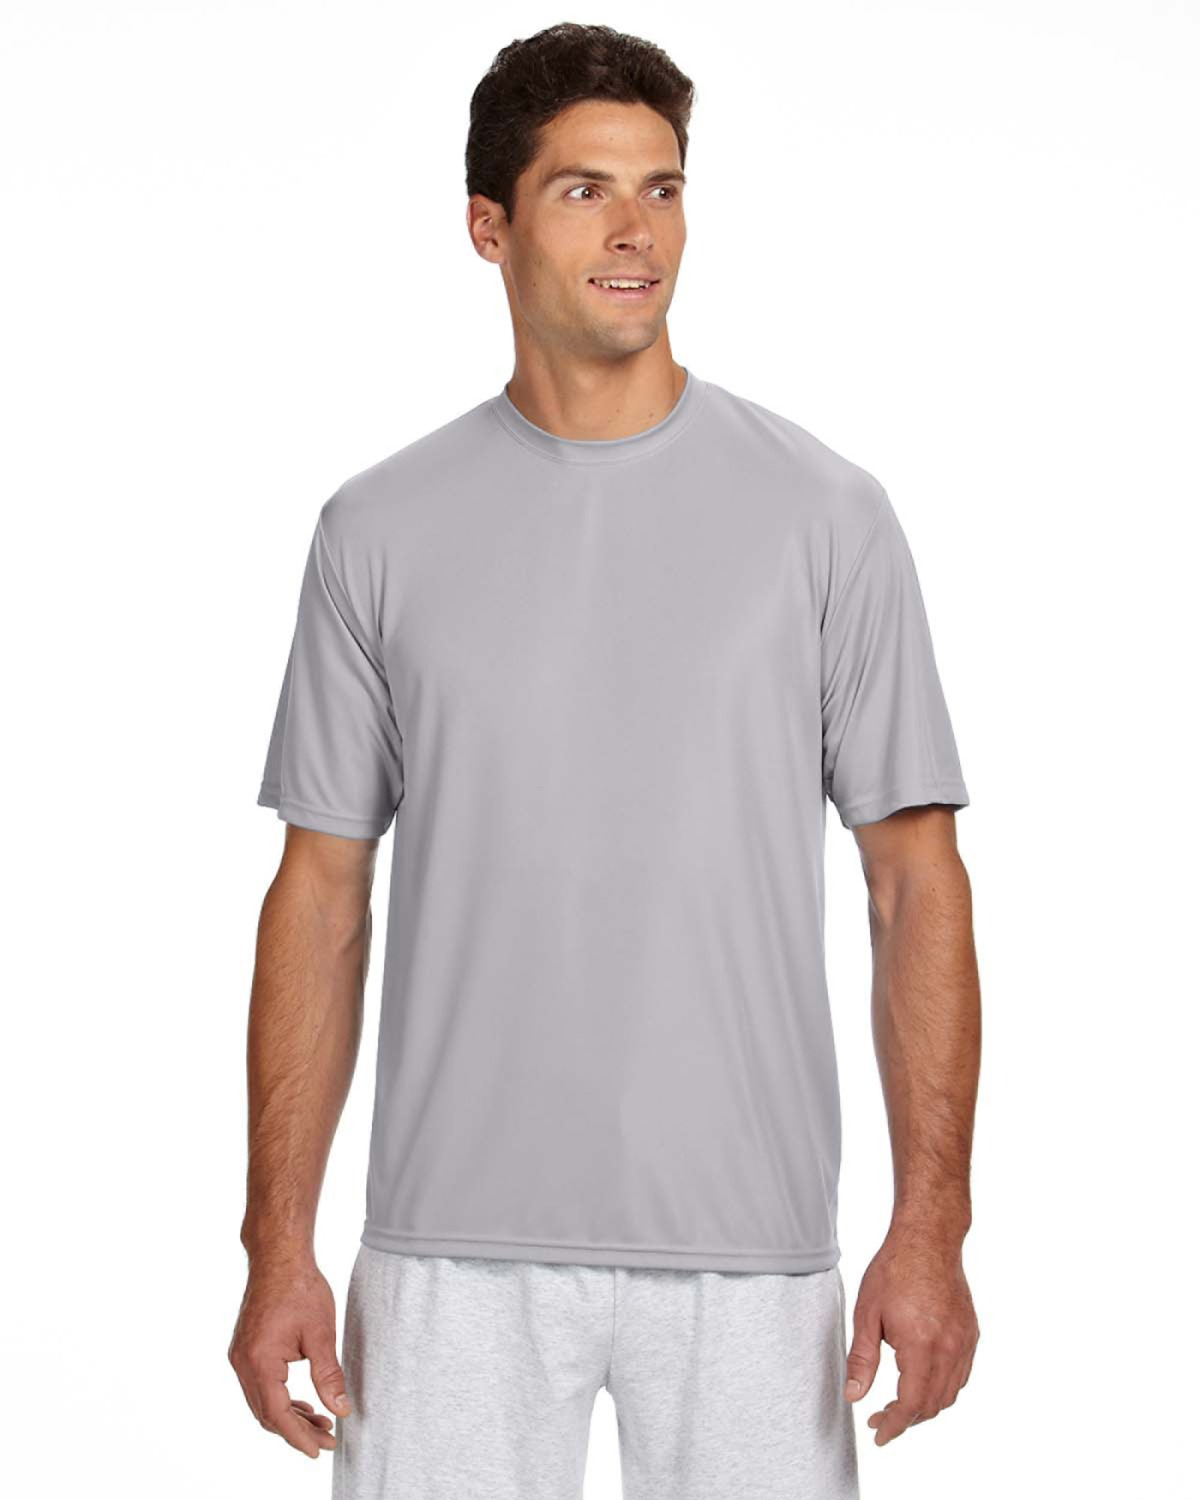 A4 N3142 – Men's Short-Sleeve Cooling Performance Crew 1